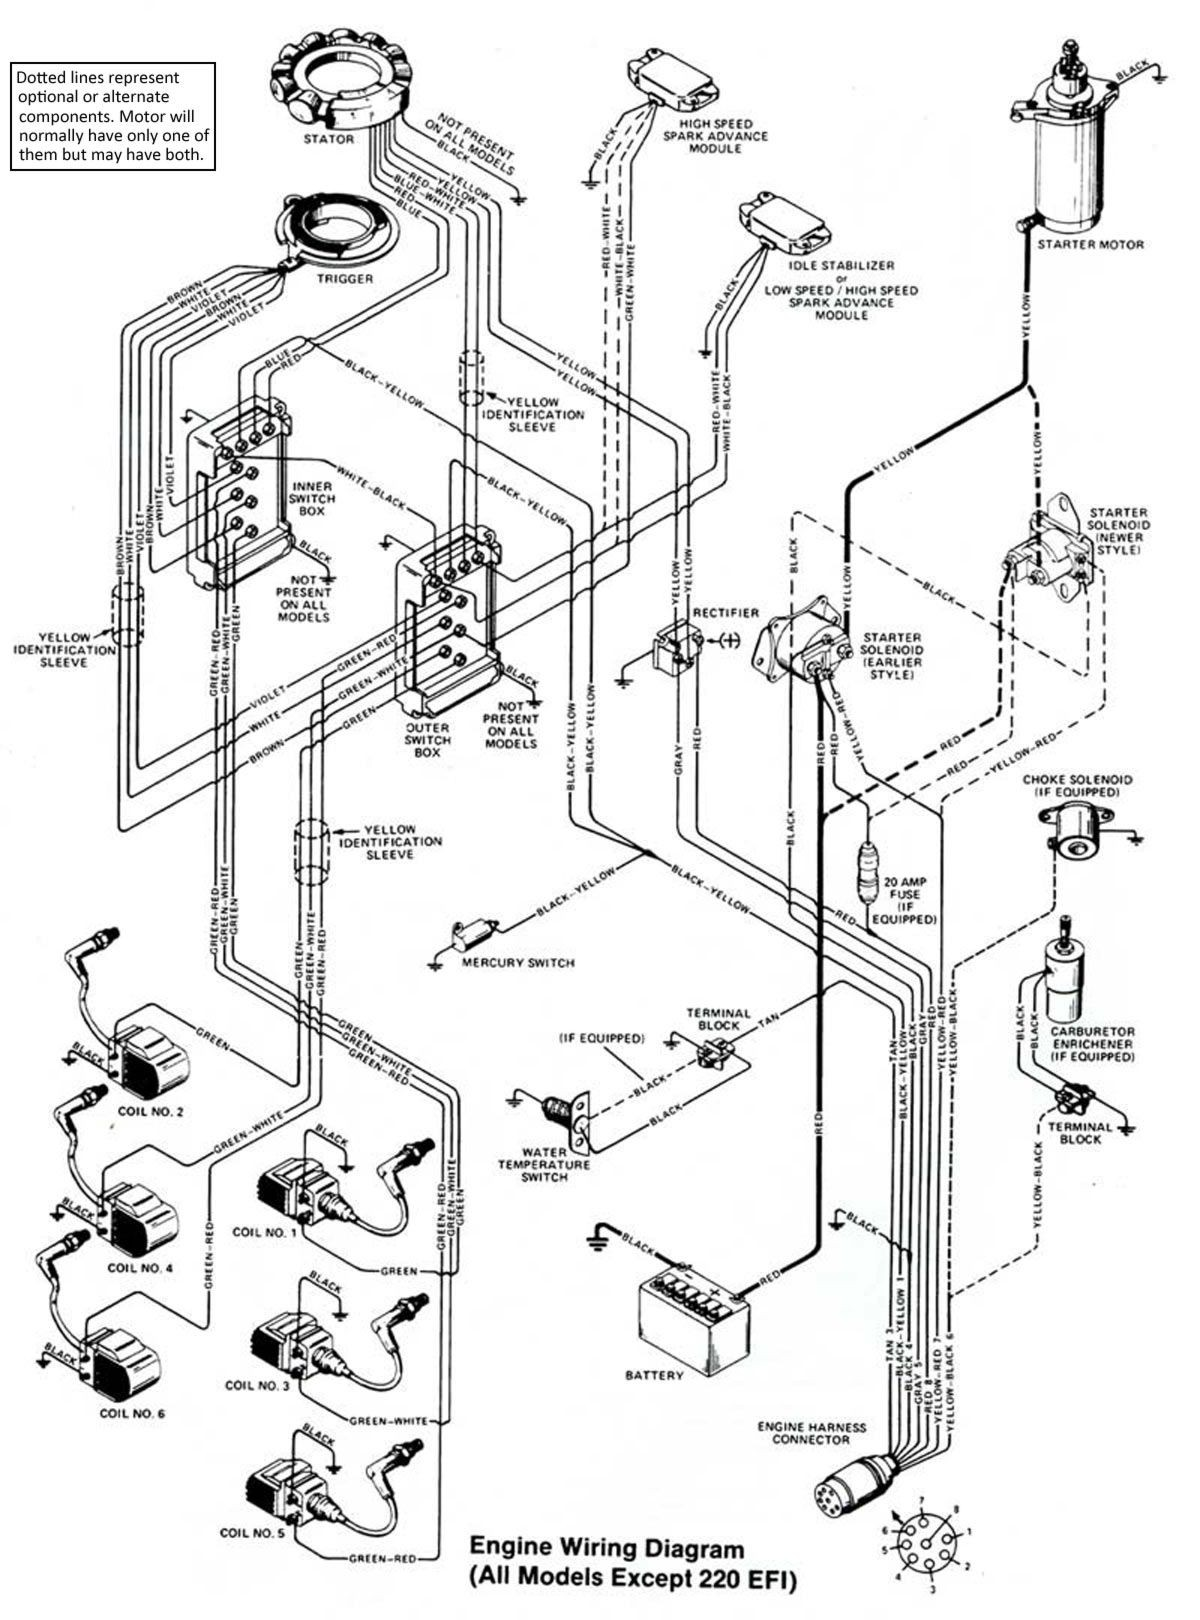 hight resolution of mercury transmission diagrams wiring library 1969 mercury cougar wiring diagram 99 mercury cougar engine diagram